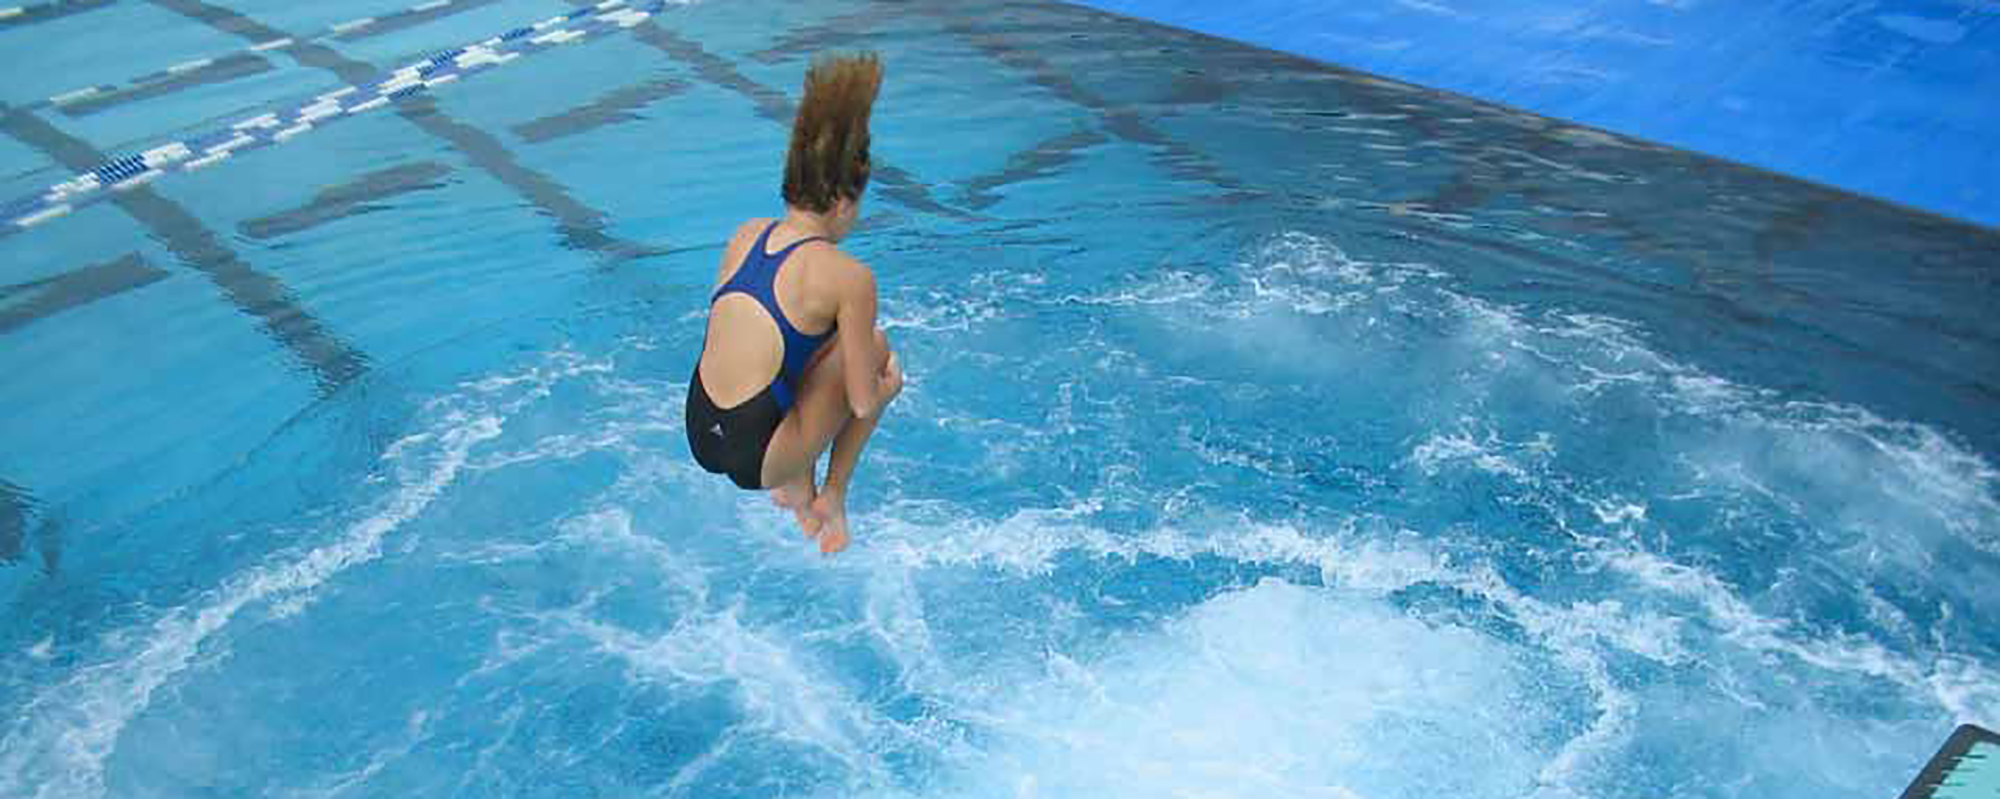 A girl doing a cannonball into a pool with sparger systems running